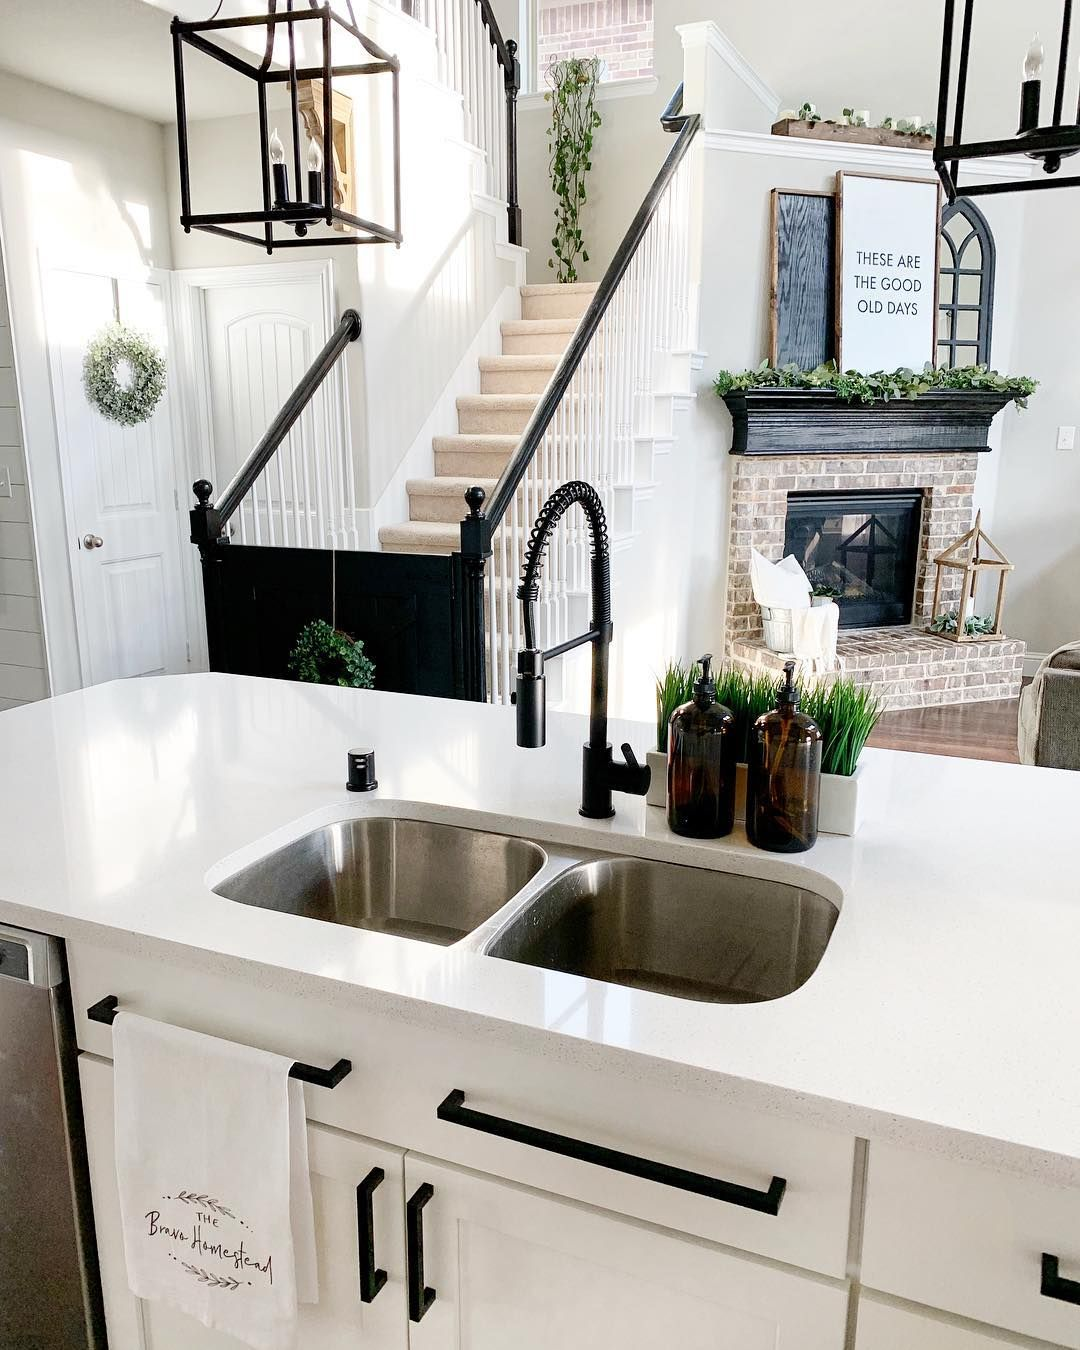 Pin By Kingston Brass On Design Dreams Things Black Kitchen Faucets Small Cottage Kitchen Kitchen Design Small